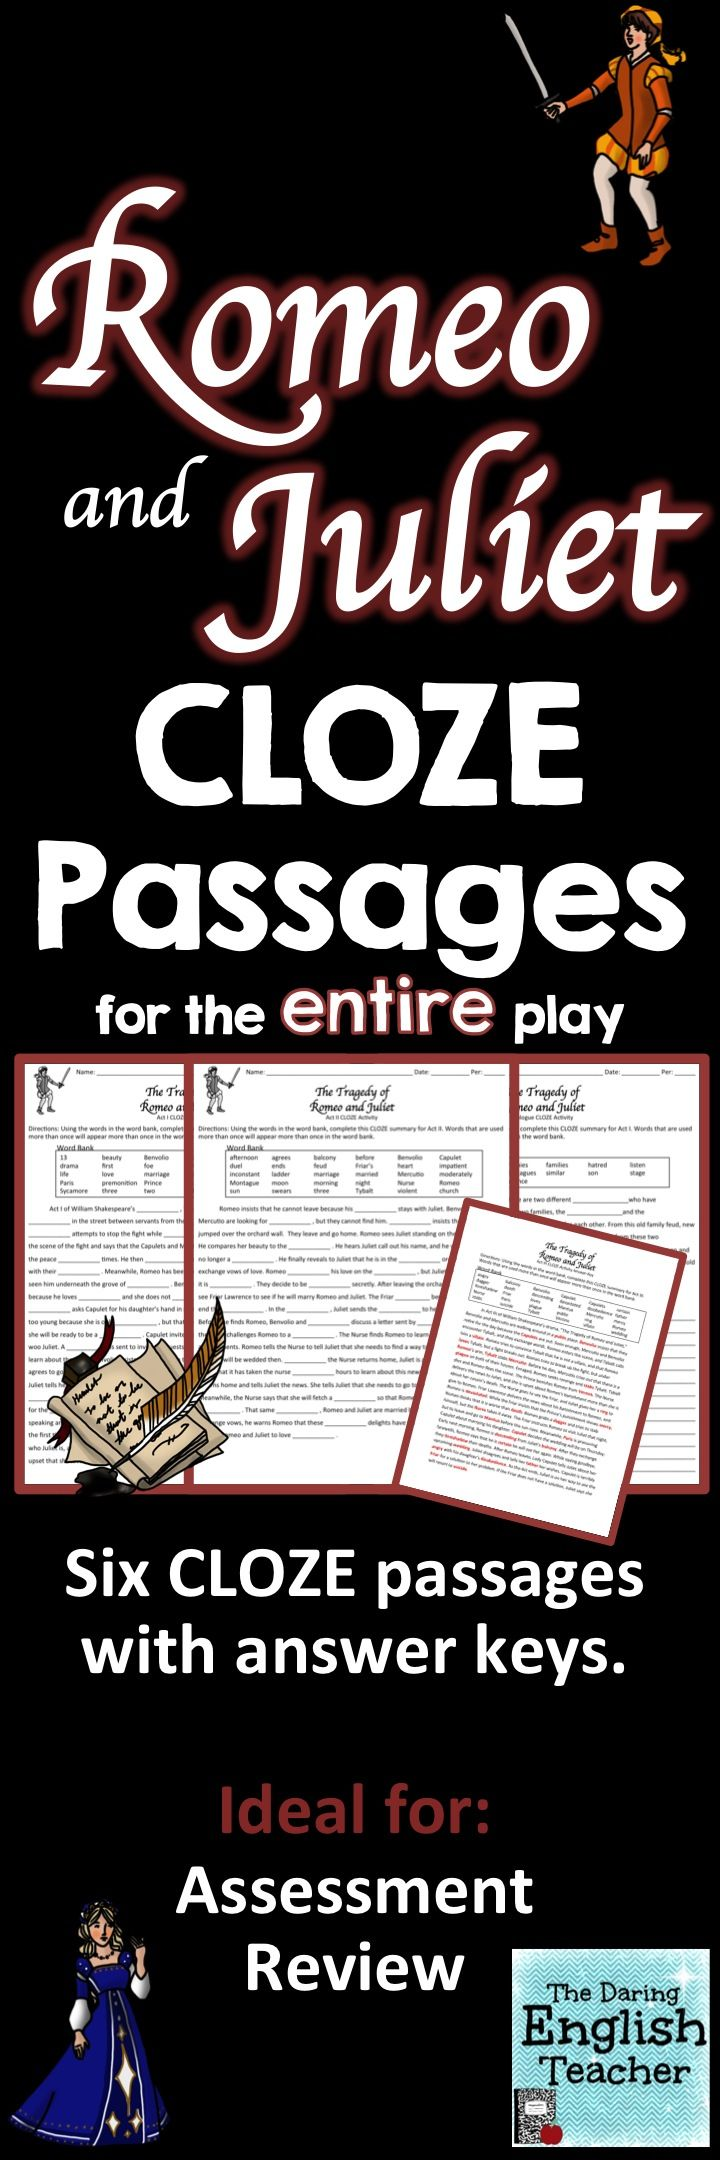 Teach Review And Asses Romeo Juliet With These Cloze Summary Passage There Are Six Differ Teaching Shakespeare Literature Lesson Inspiration Prologue Act 1 Study Guide Answers